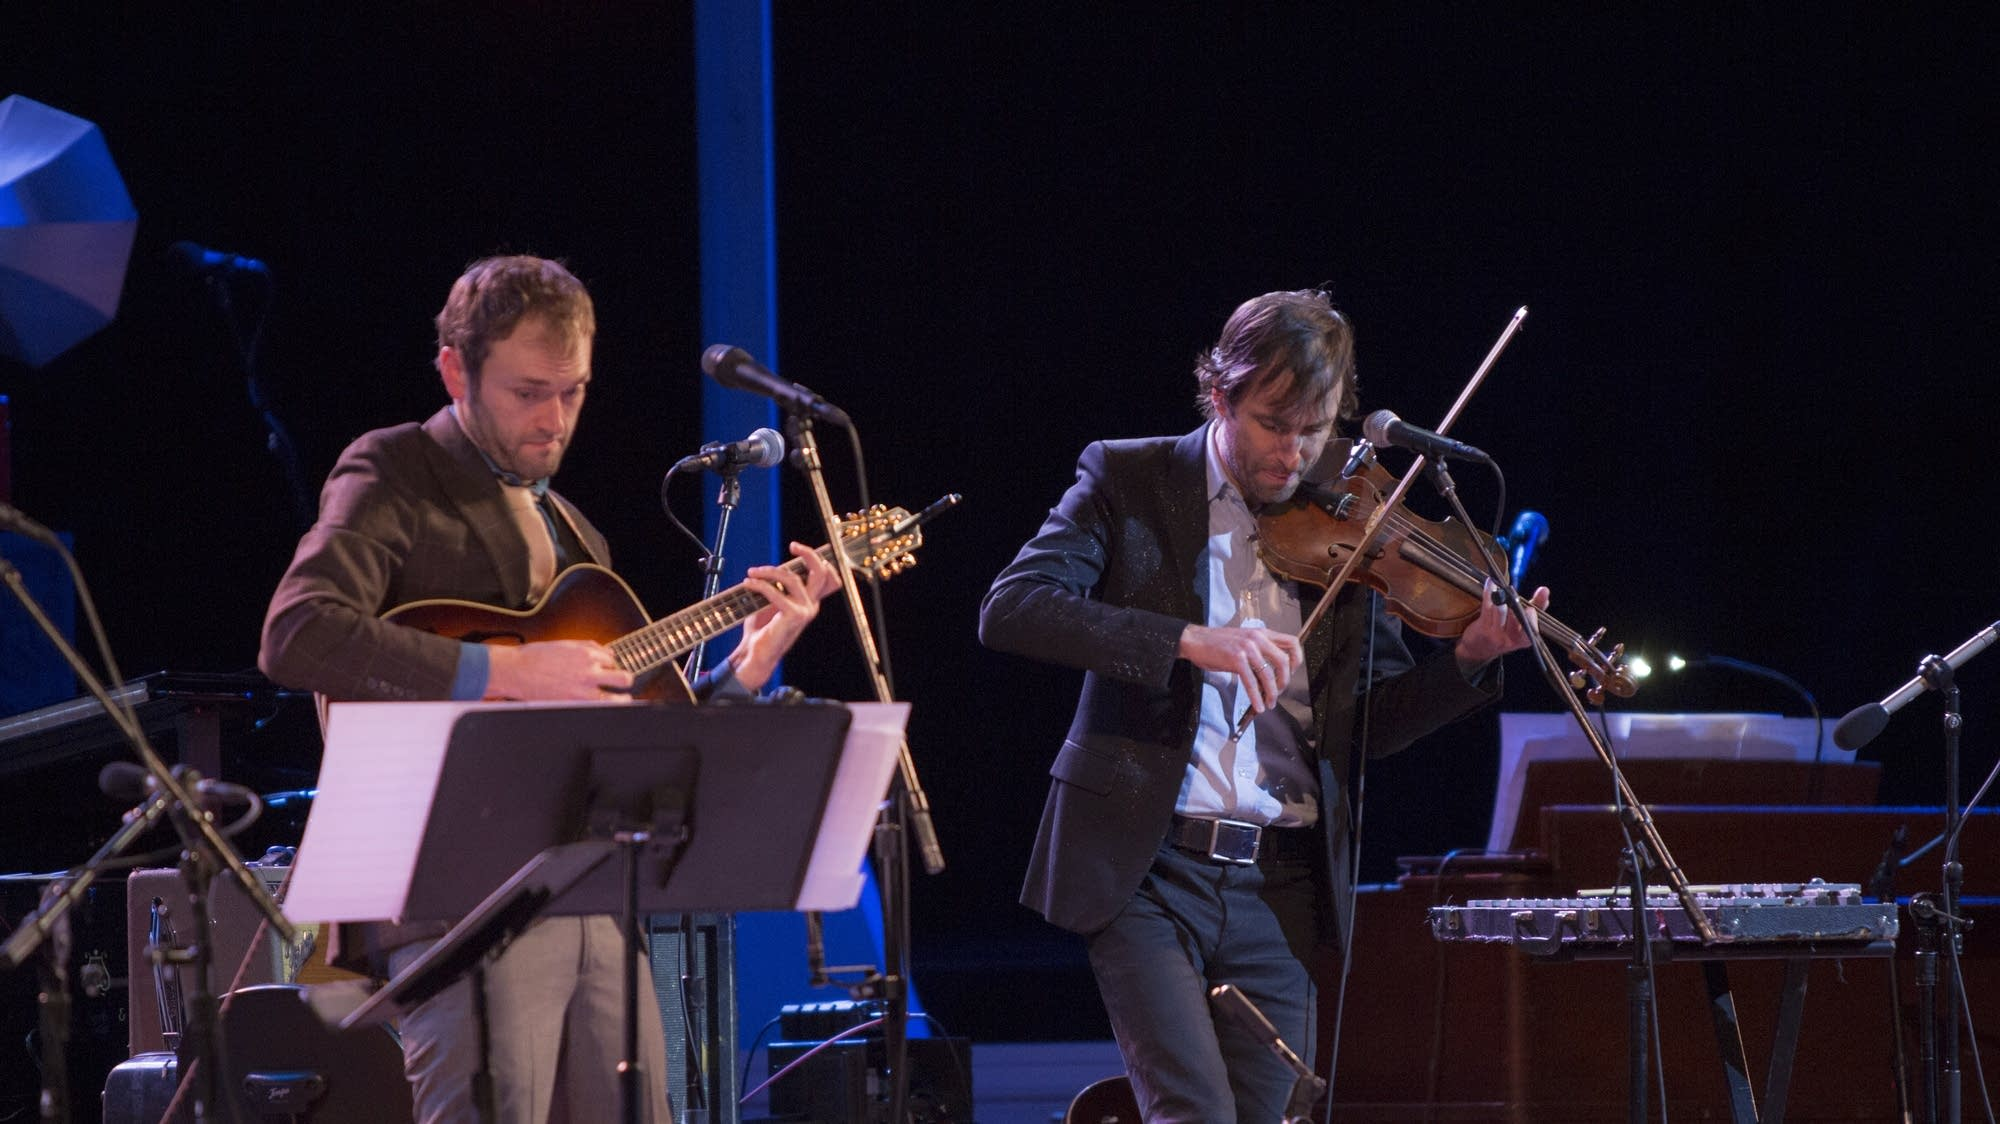 Chris Thile and Andrew Bird